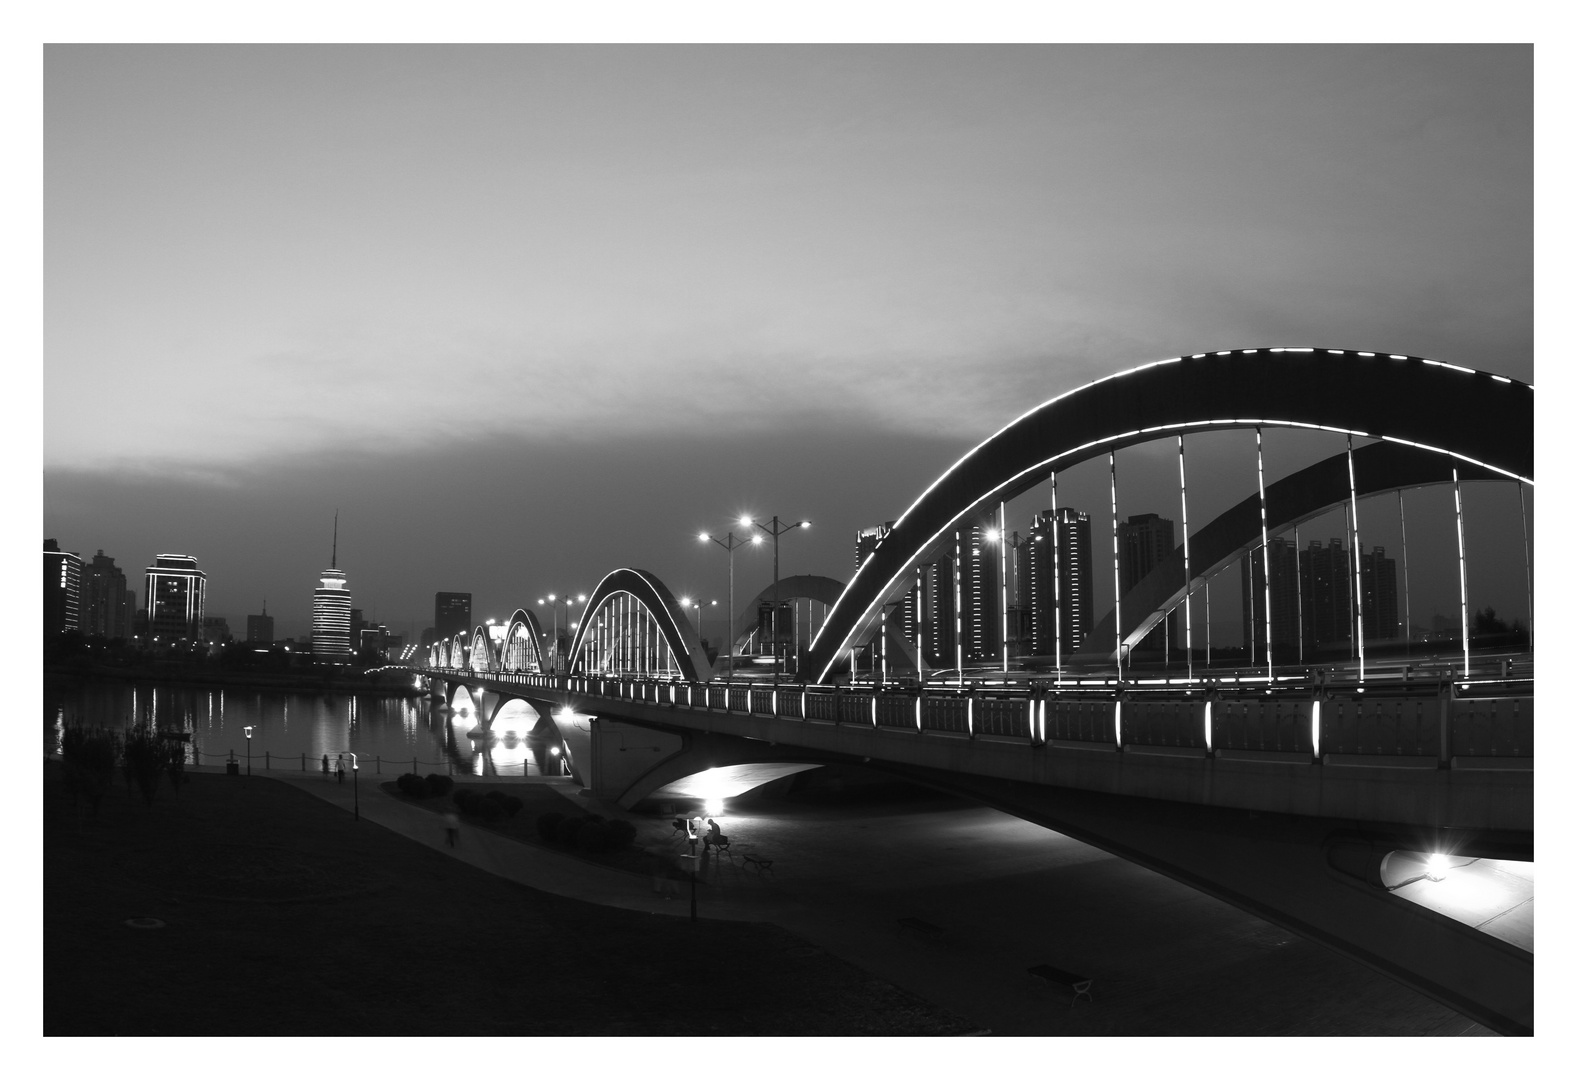 Bridge in Taiyuan - China